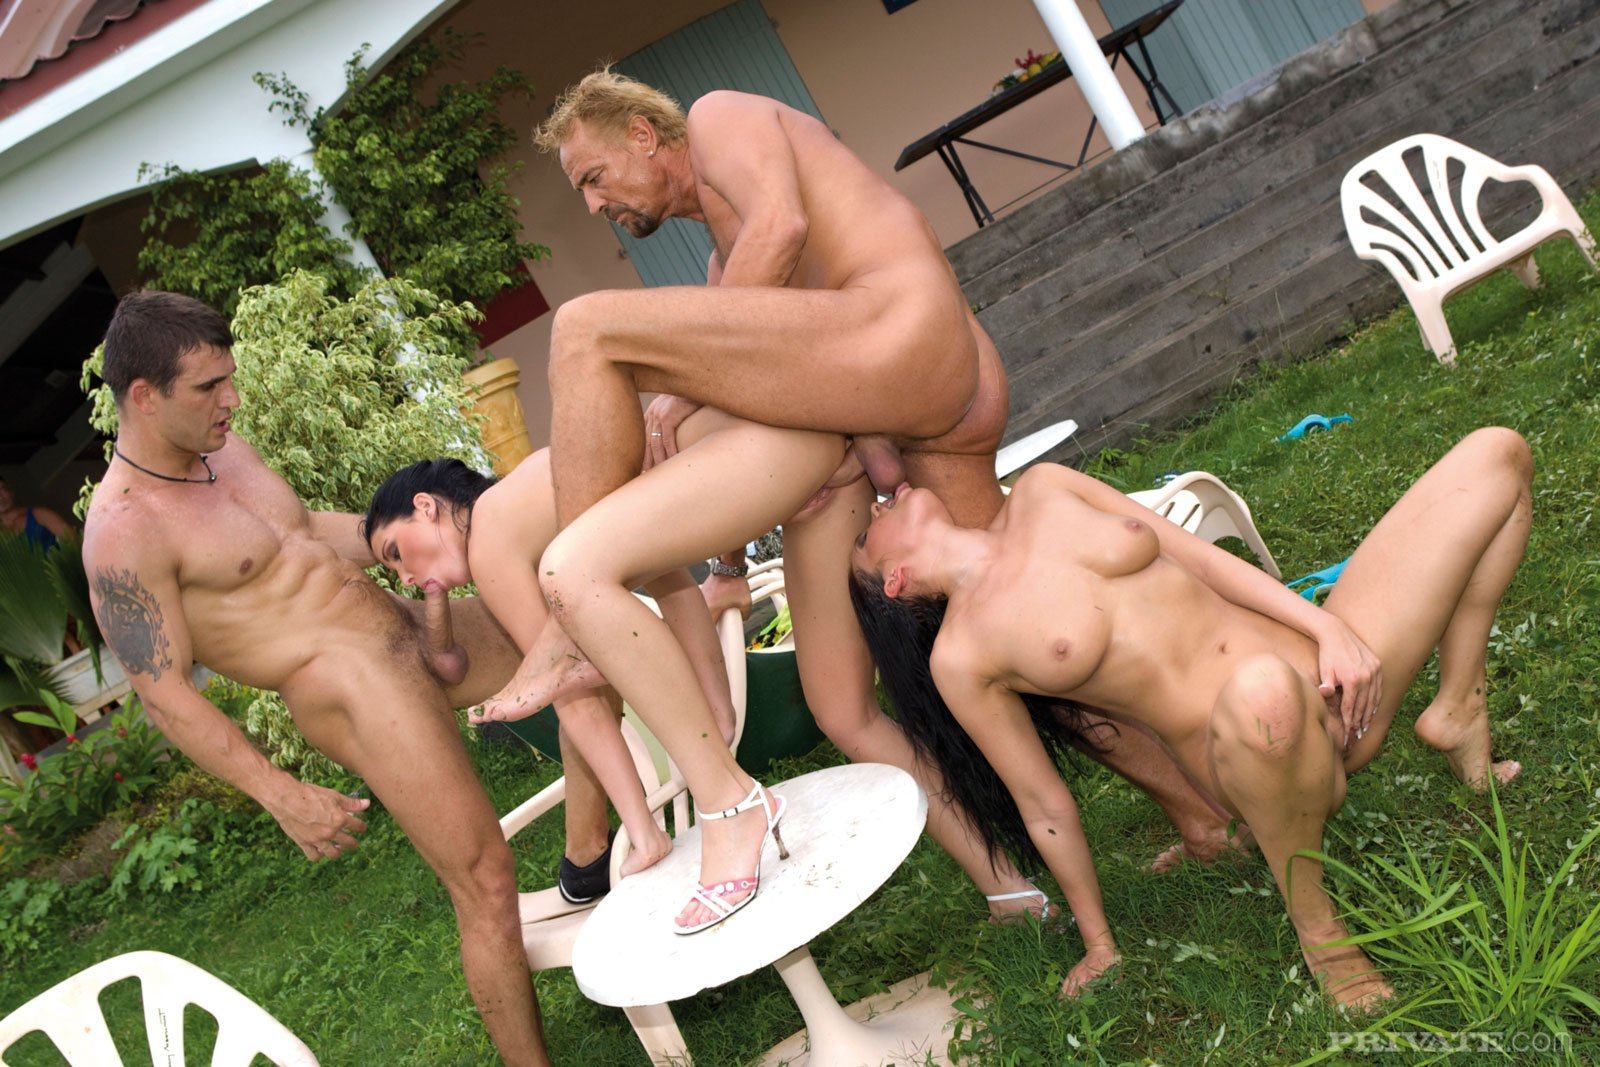 Real German Outdoor Groupsex Fuck Orgy Porn Pics